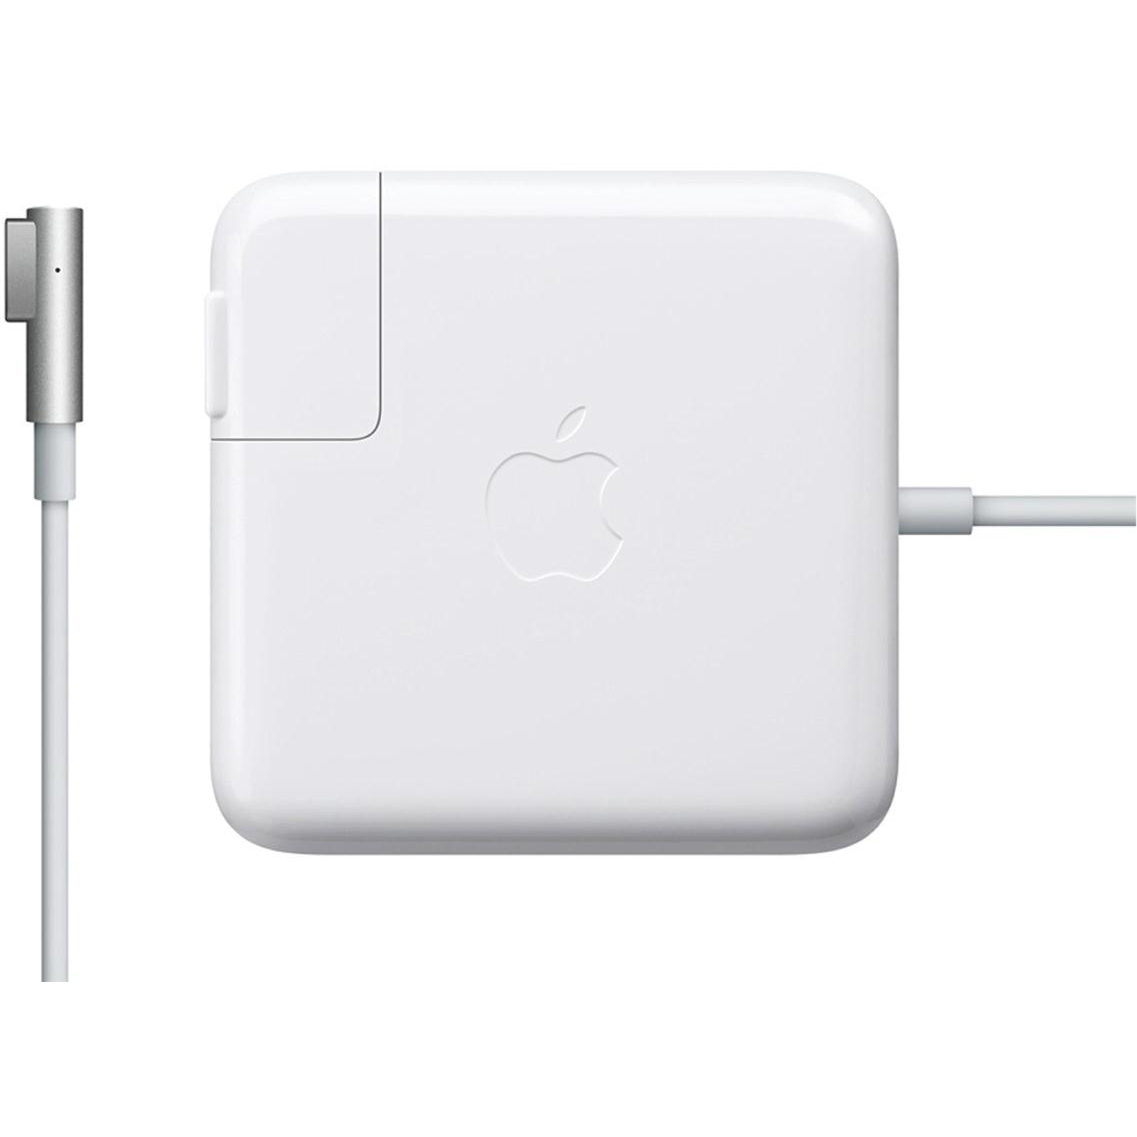 Apple Magsafe 2 Power Adaptor for MacBook Pro 2010 15 &17in 85W White Ref MC556B/C